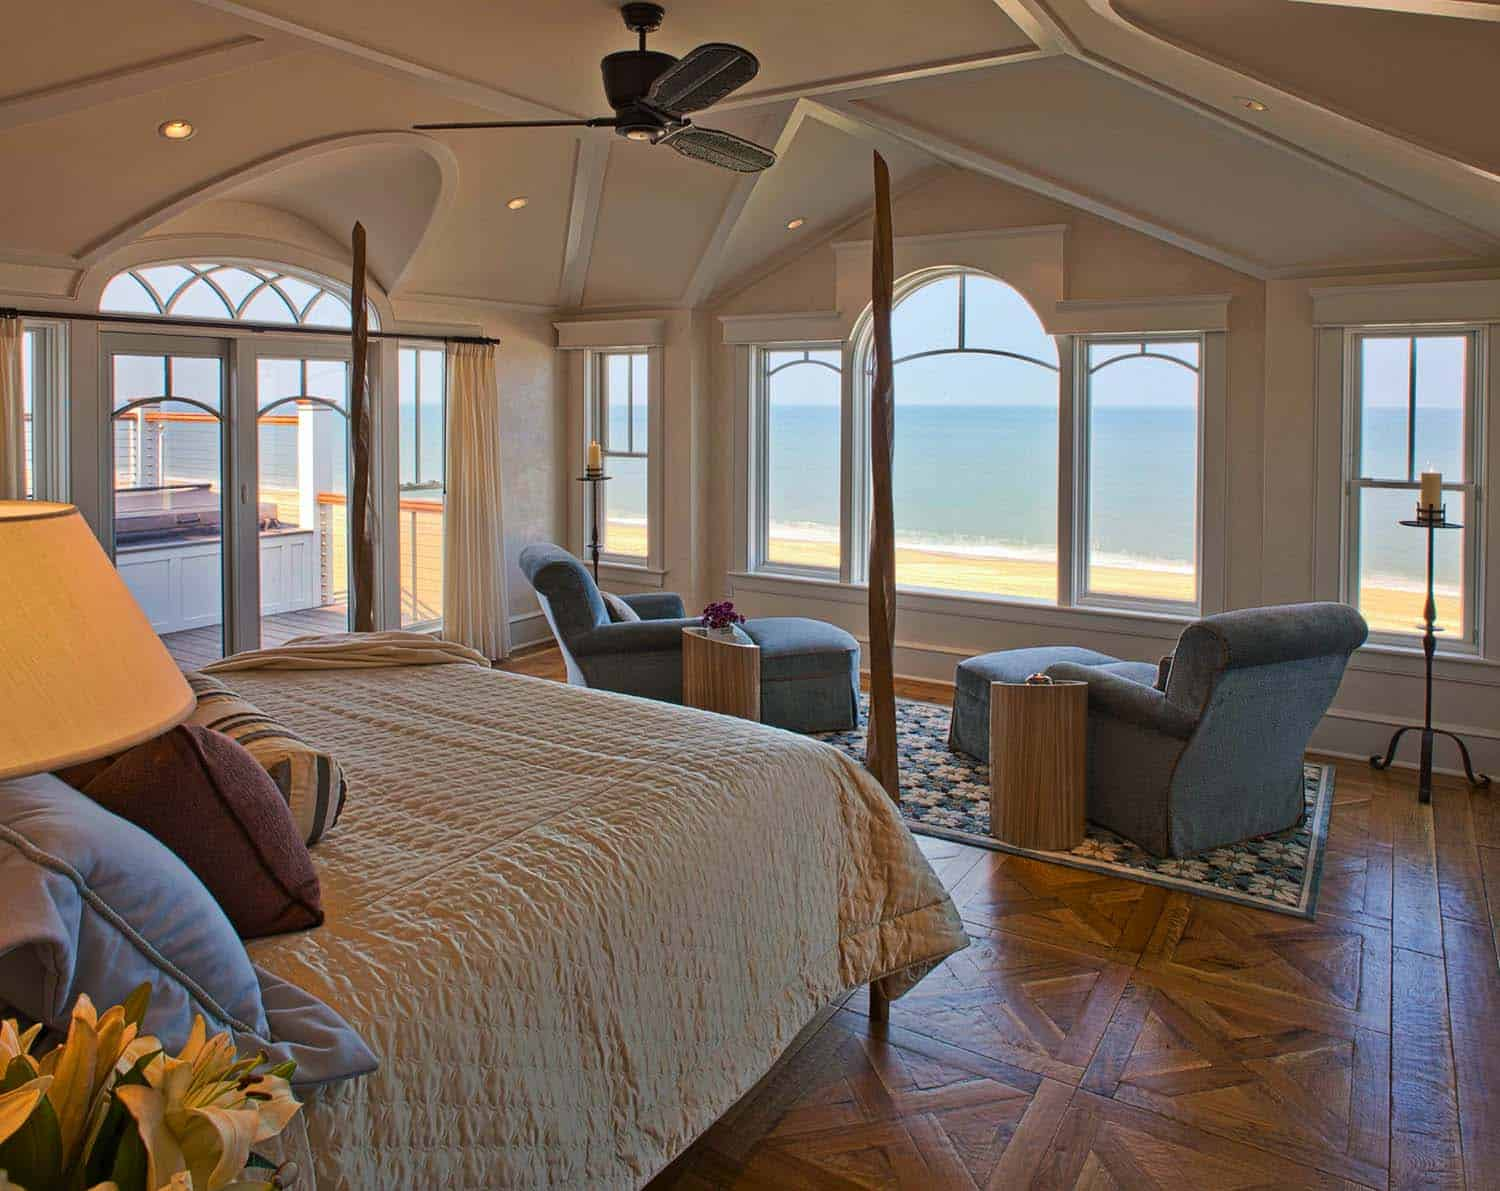 Bedroom With Ocean Views-06-1 Kindesign